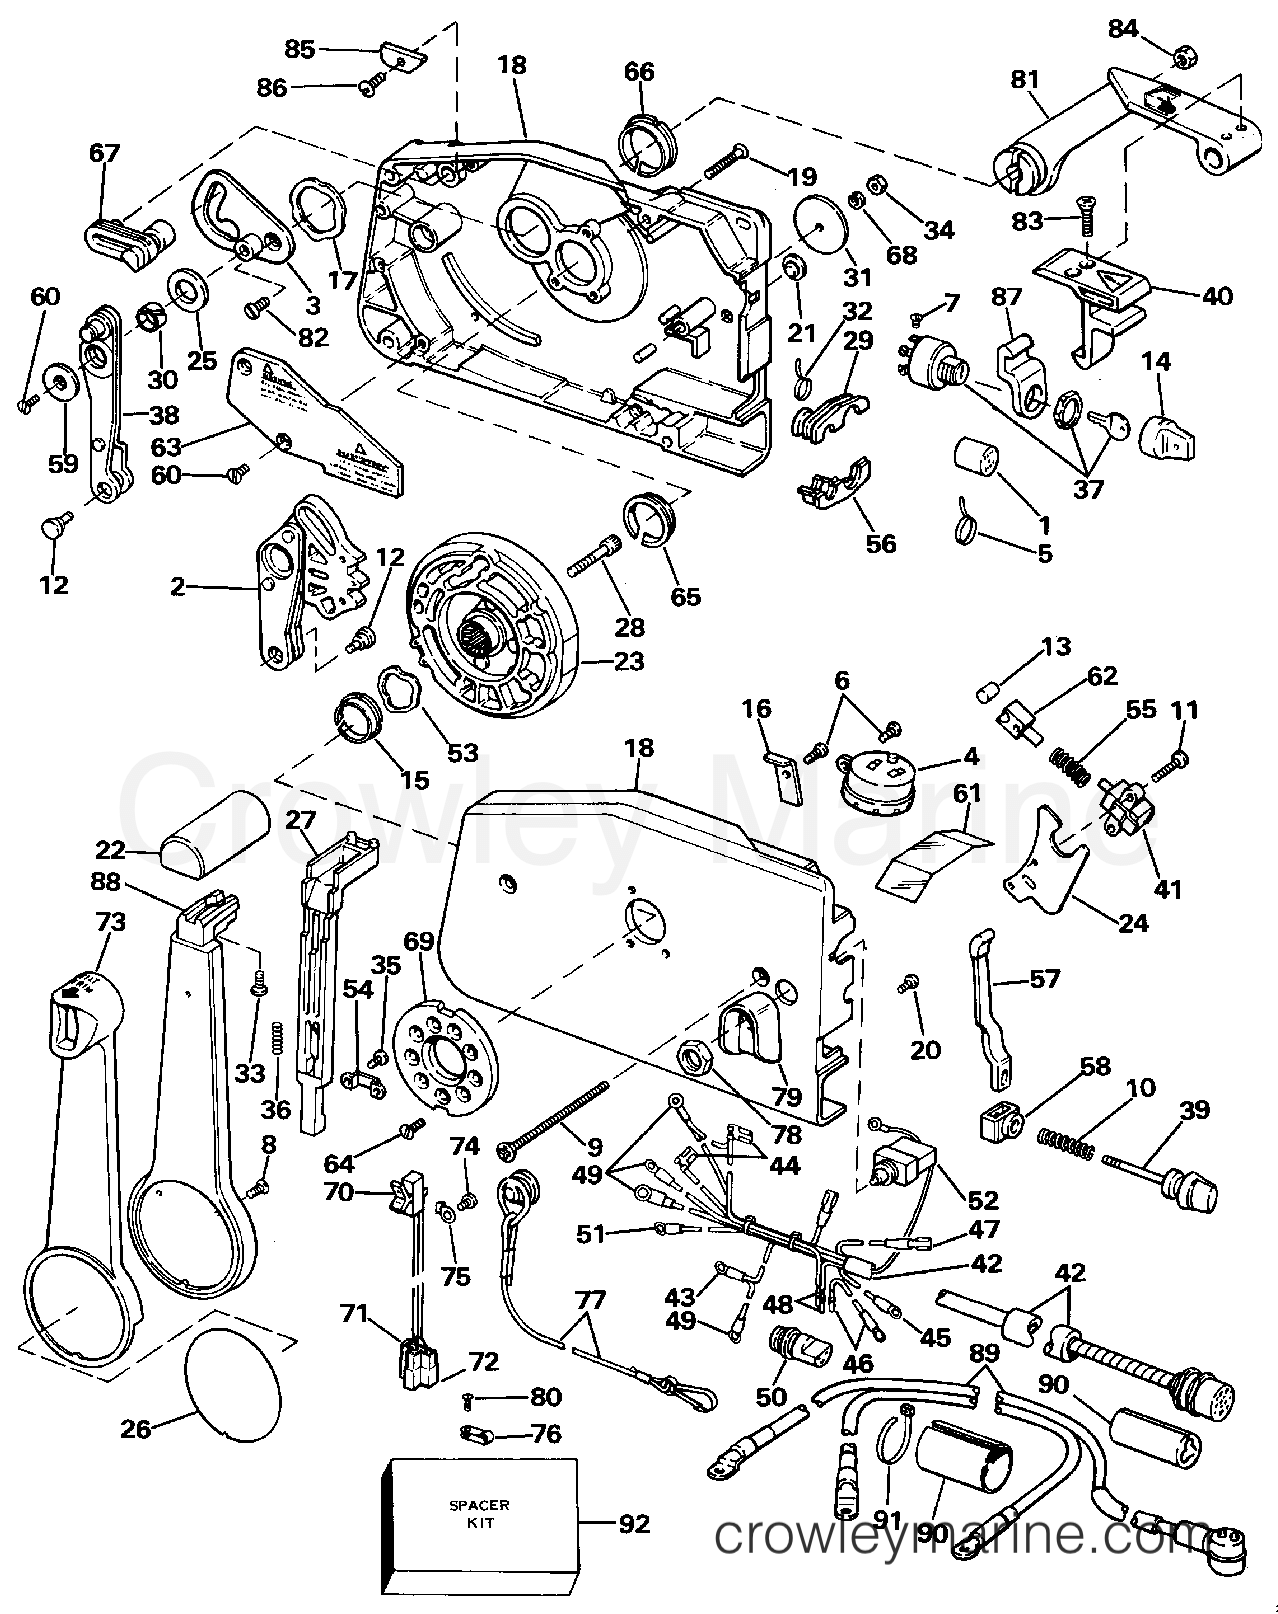 Johnson Control For Boat